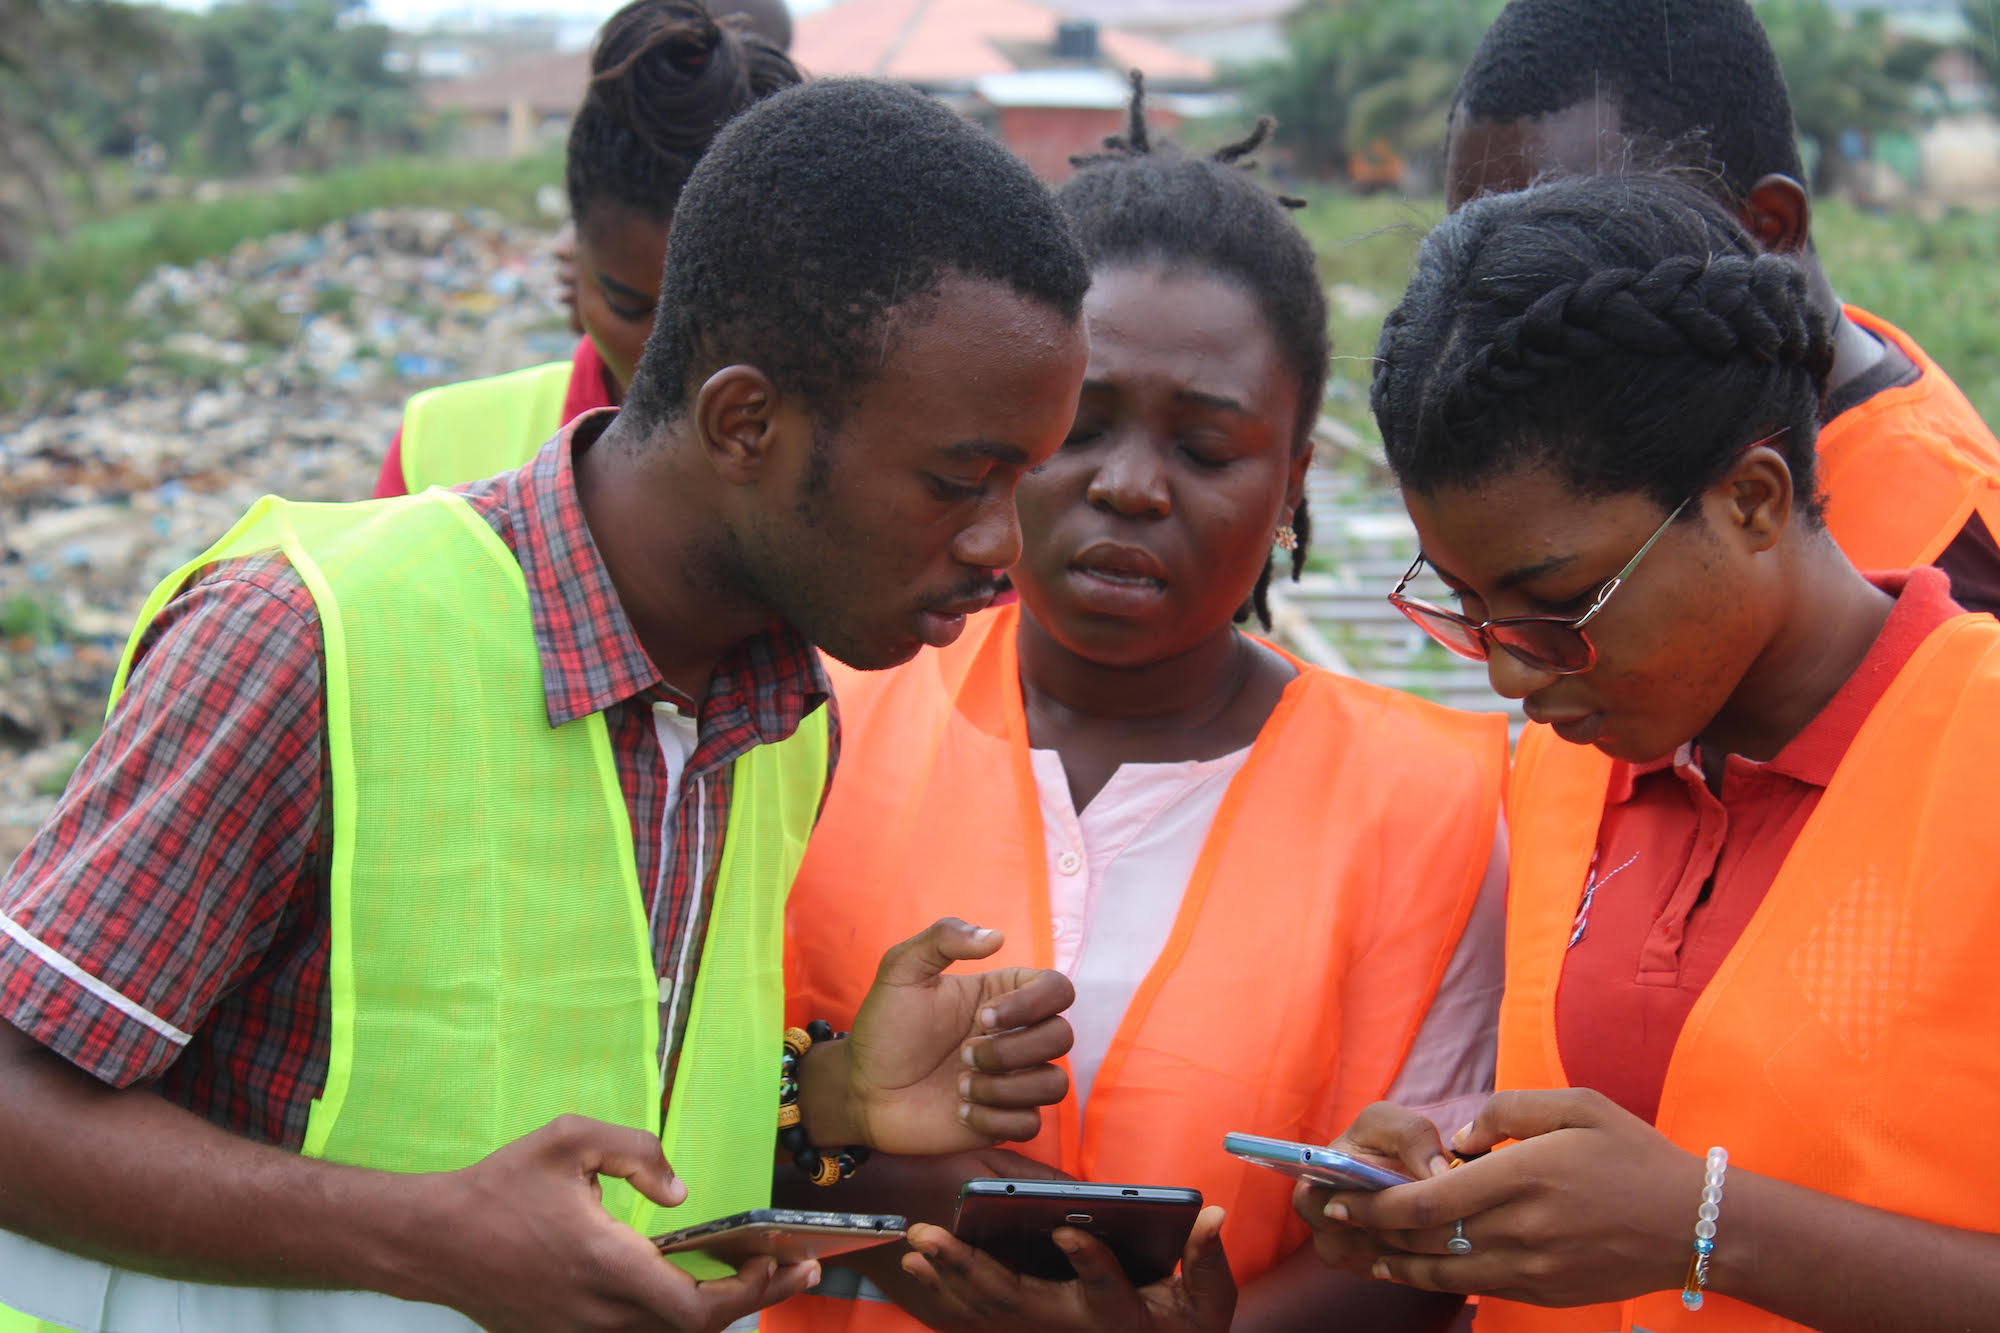 Accra-open-cities-africa-Chris working with other mappers in the field to collect data using mobile survey apps.jpg